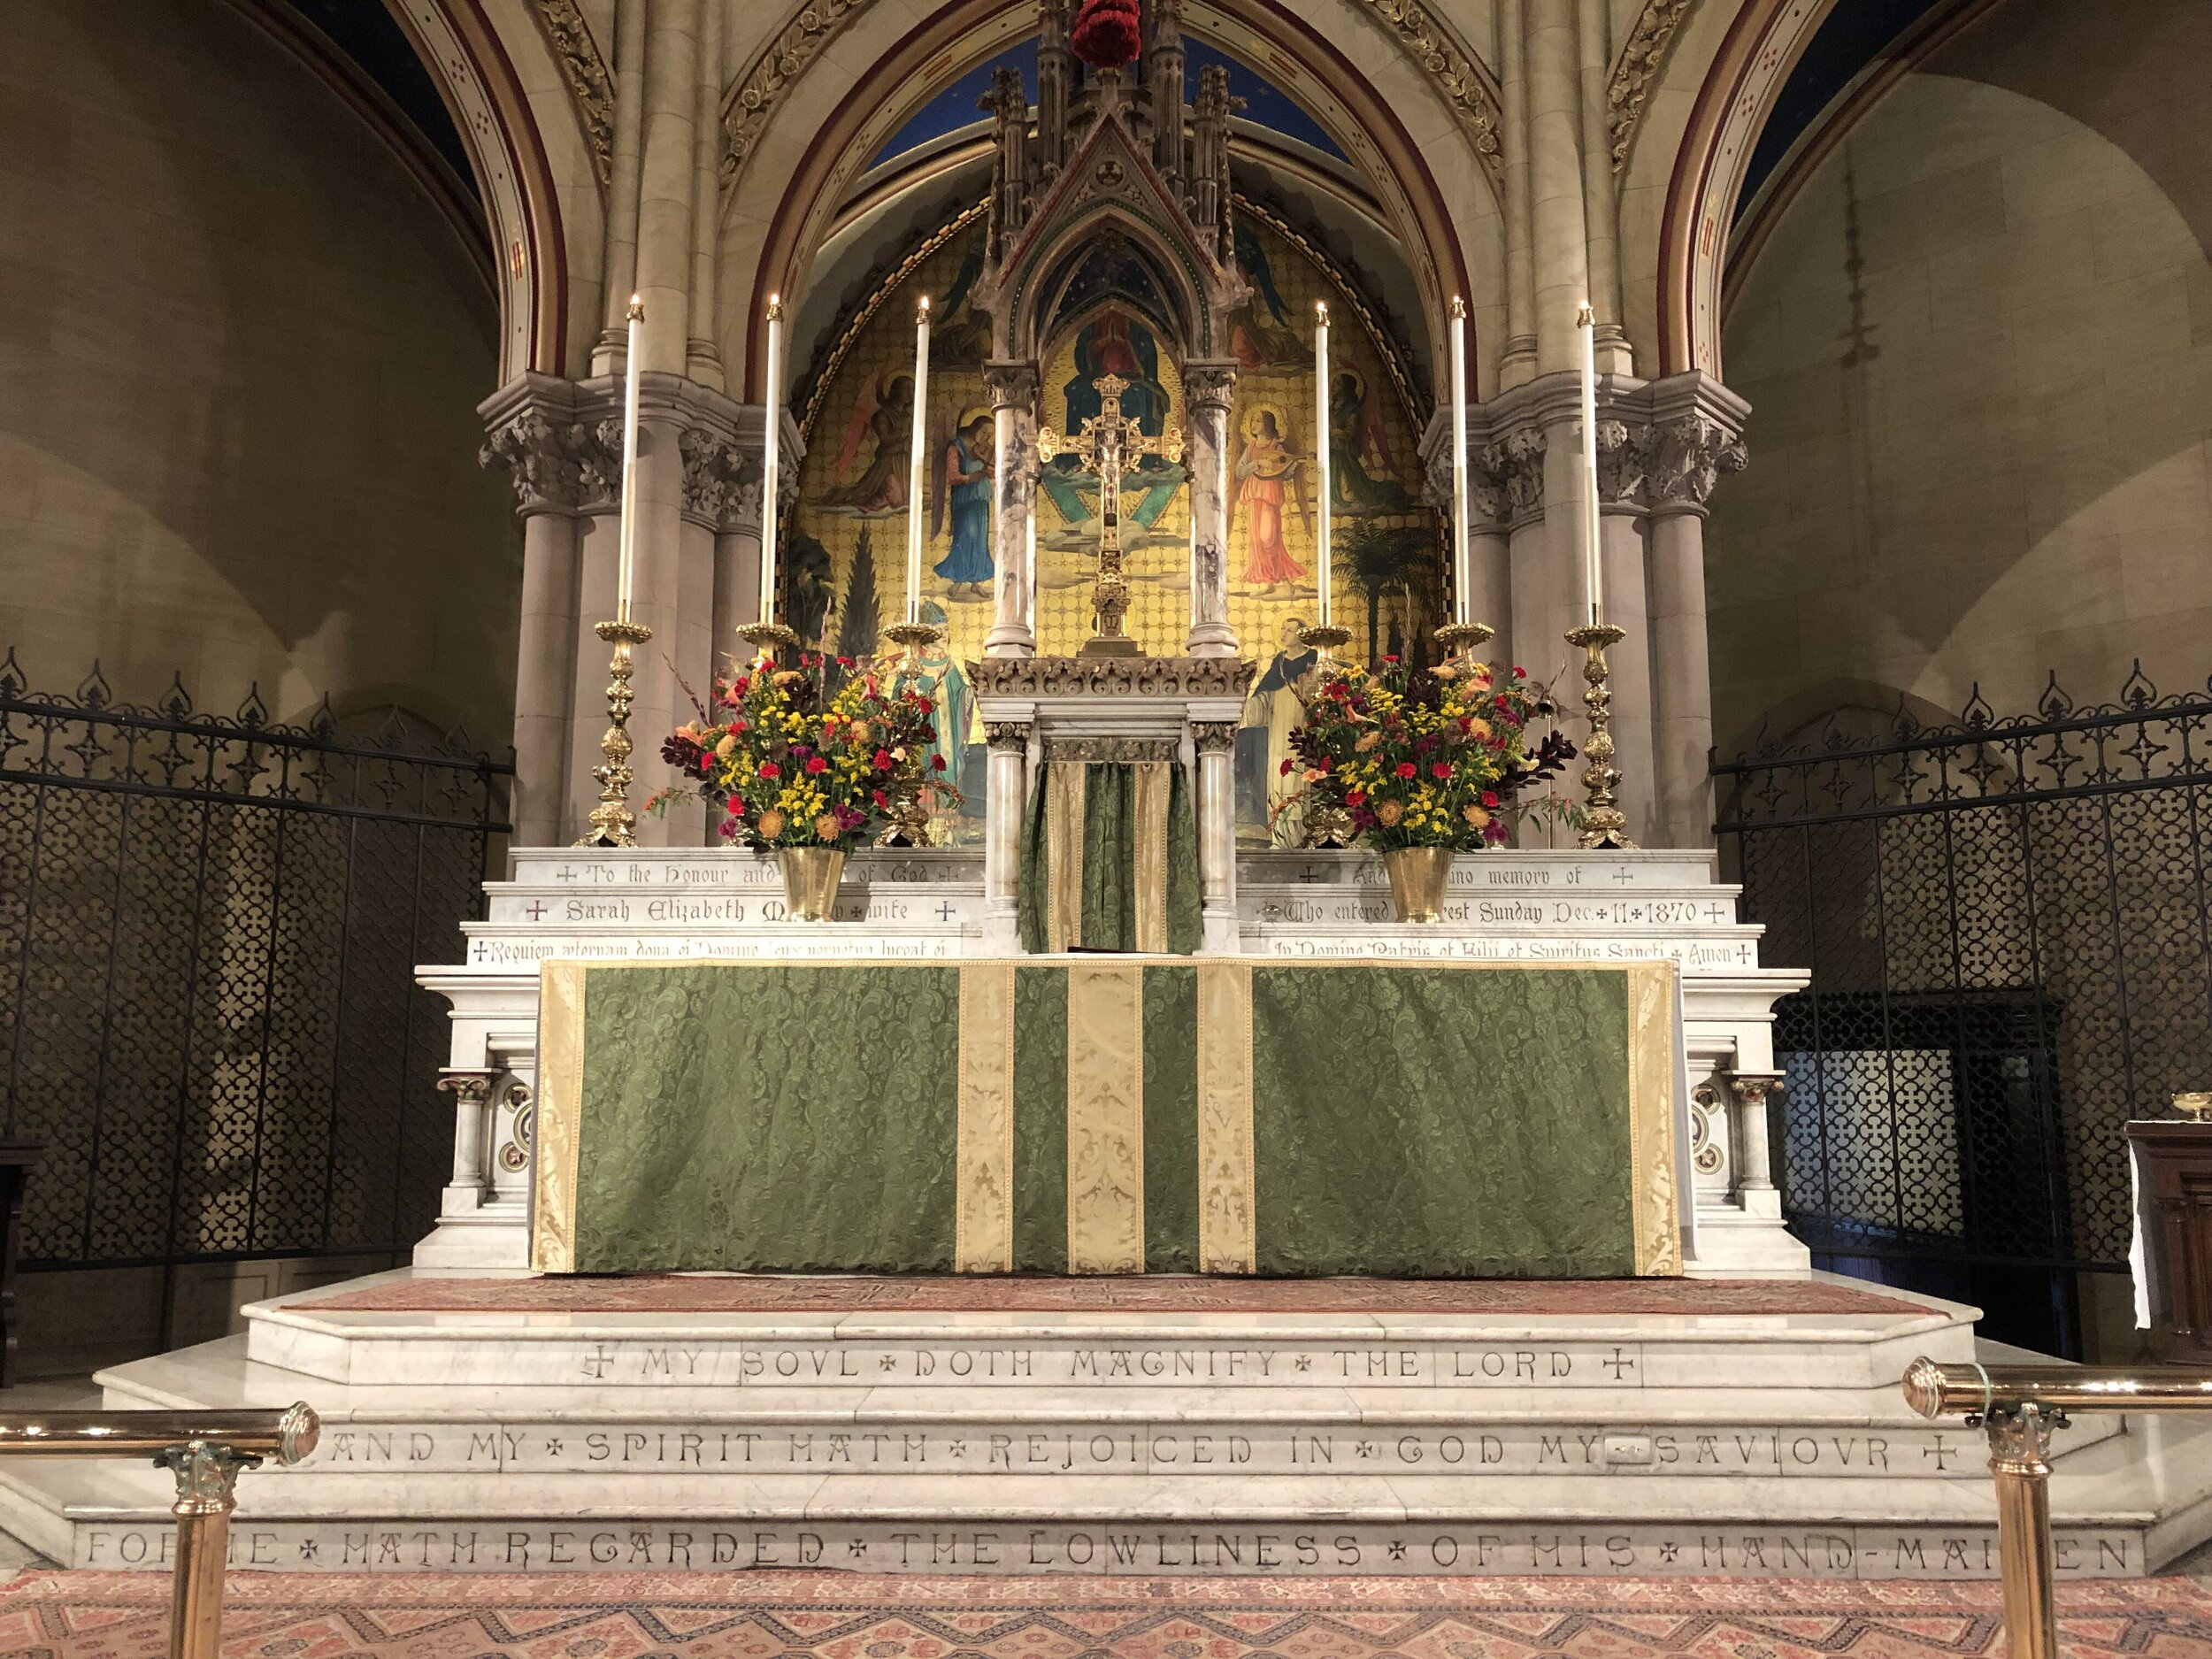 The flowers on the altar and in the church on the Seventeenth Sunday after Pentecost were given to the glory of God and in memory of the departed rectors of the parish. The flowers were arranged by Grace Mudd.   Photo:  Brendon Hunter